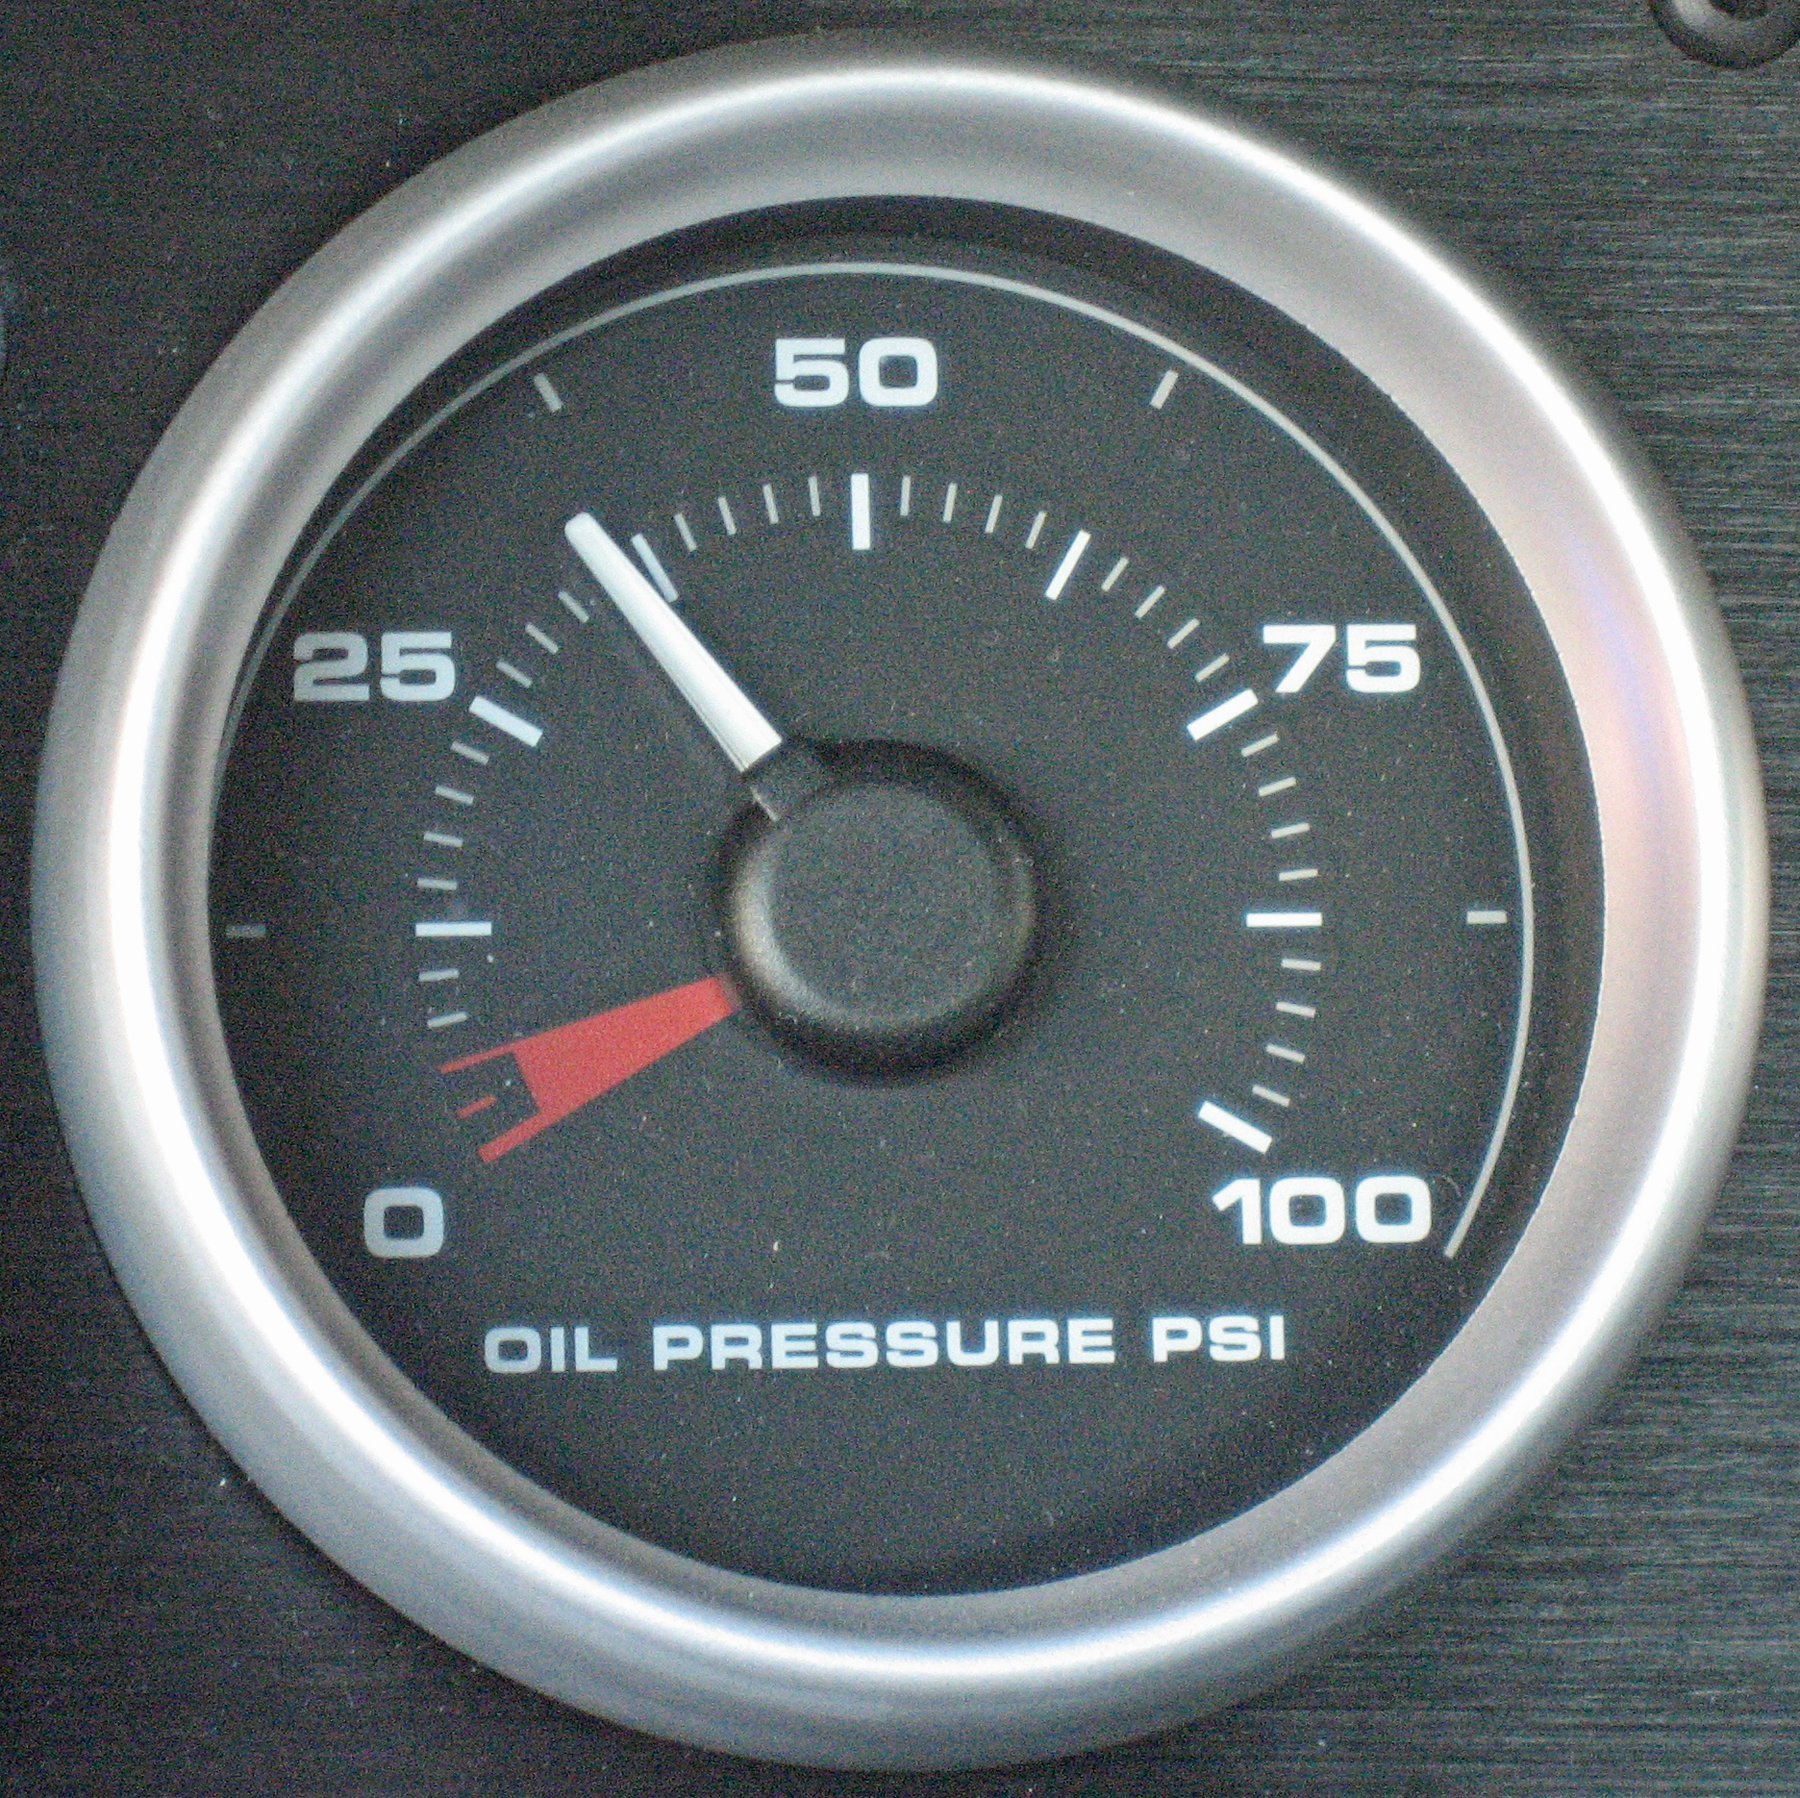 2005 Ford GT Long Term Oil Pressure Gauge